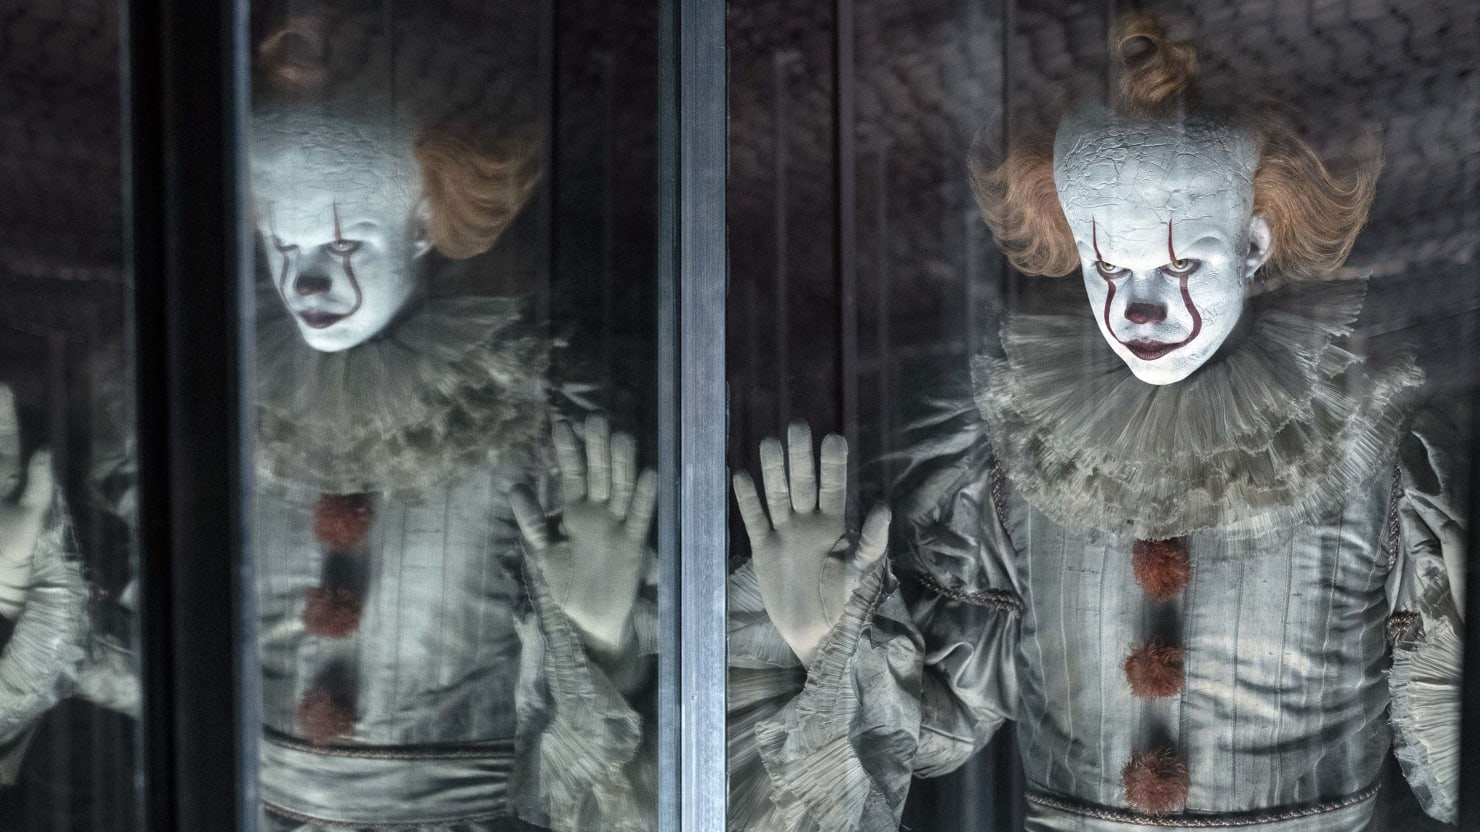 IT: Chapter 2' Review: One of the Finest Stephen King